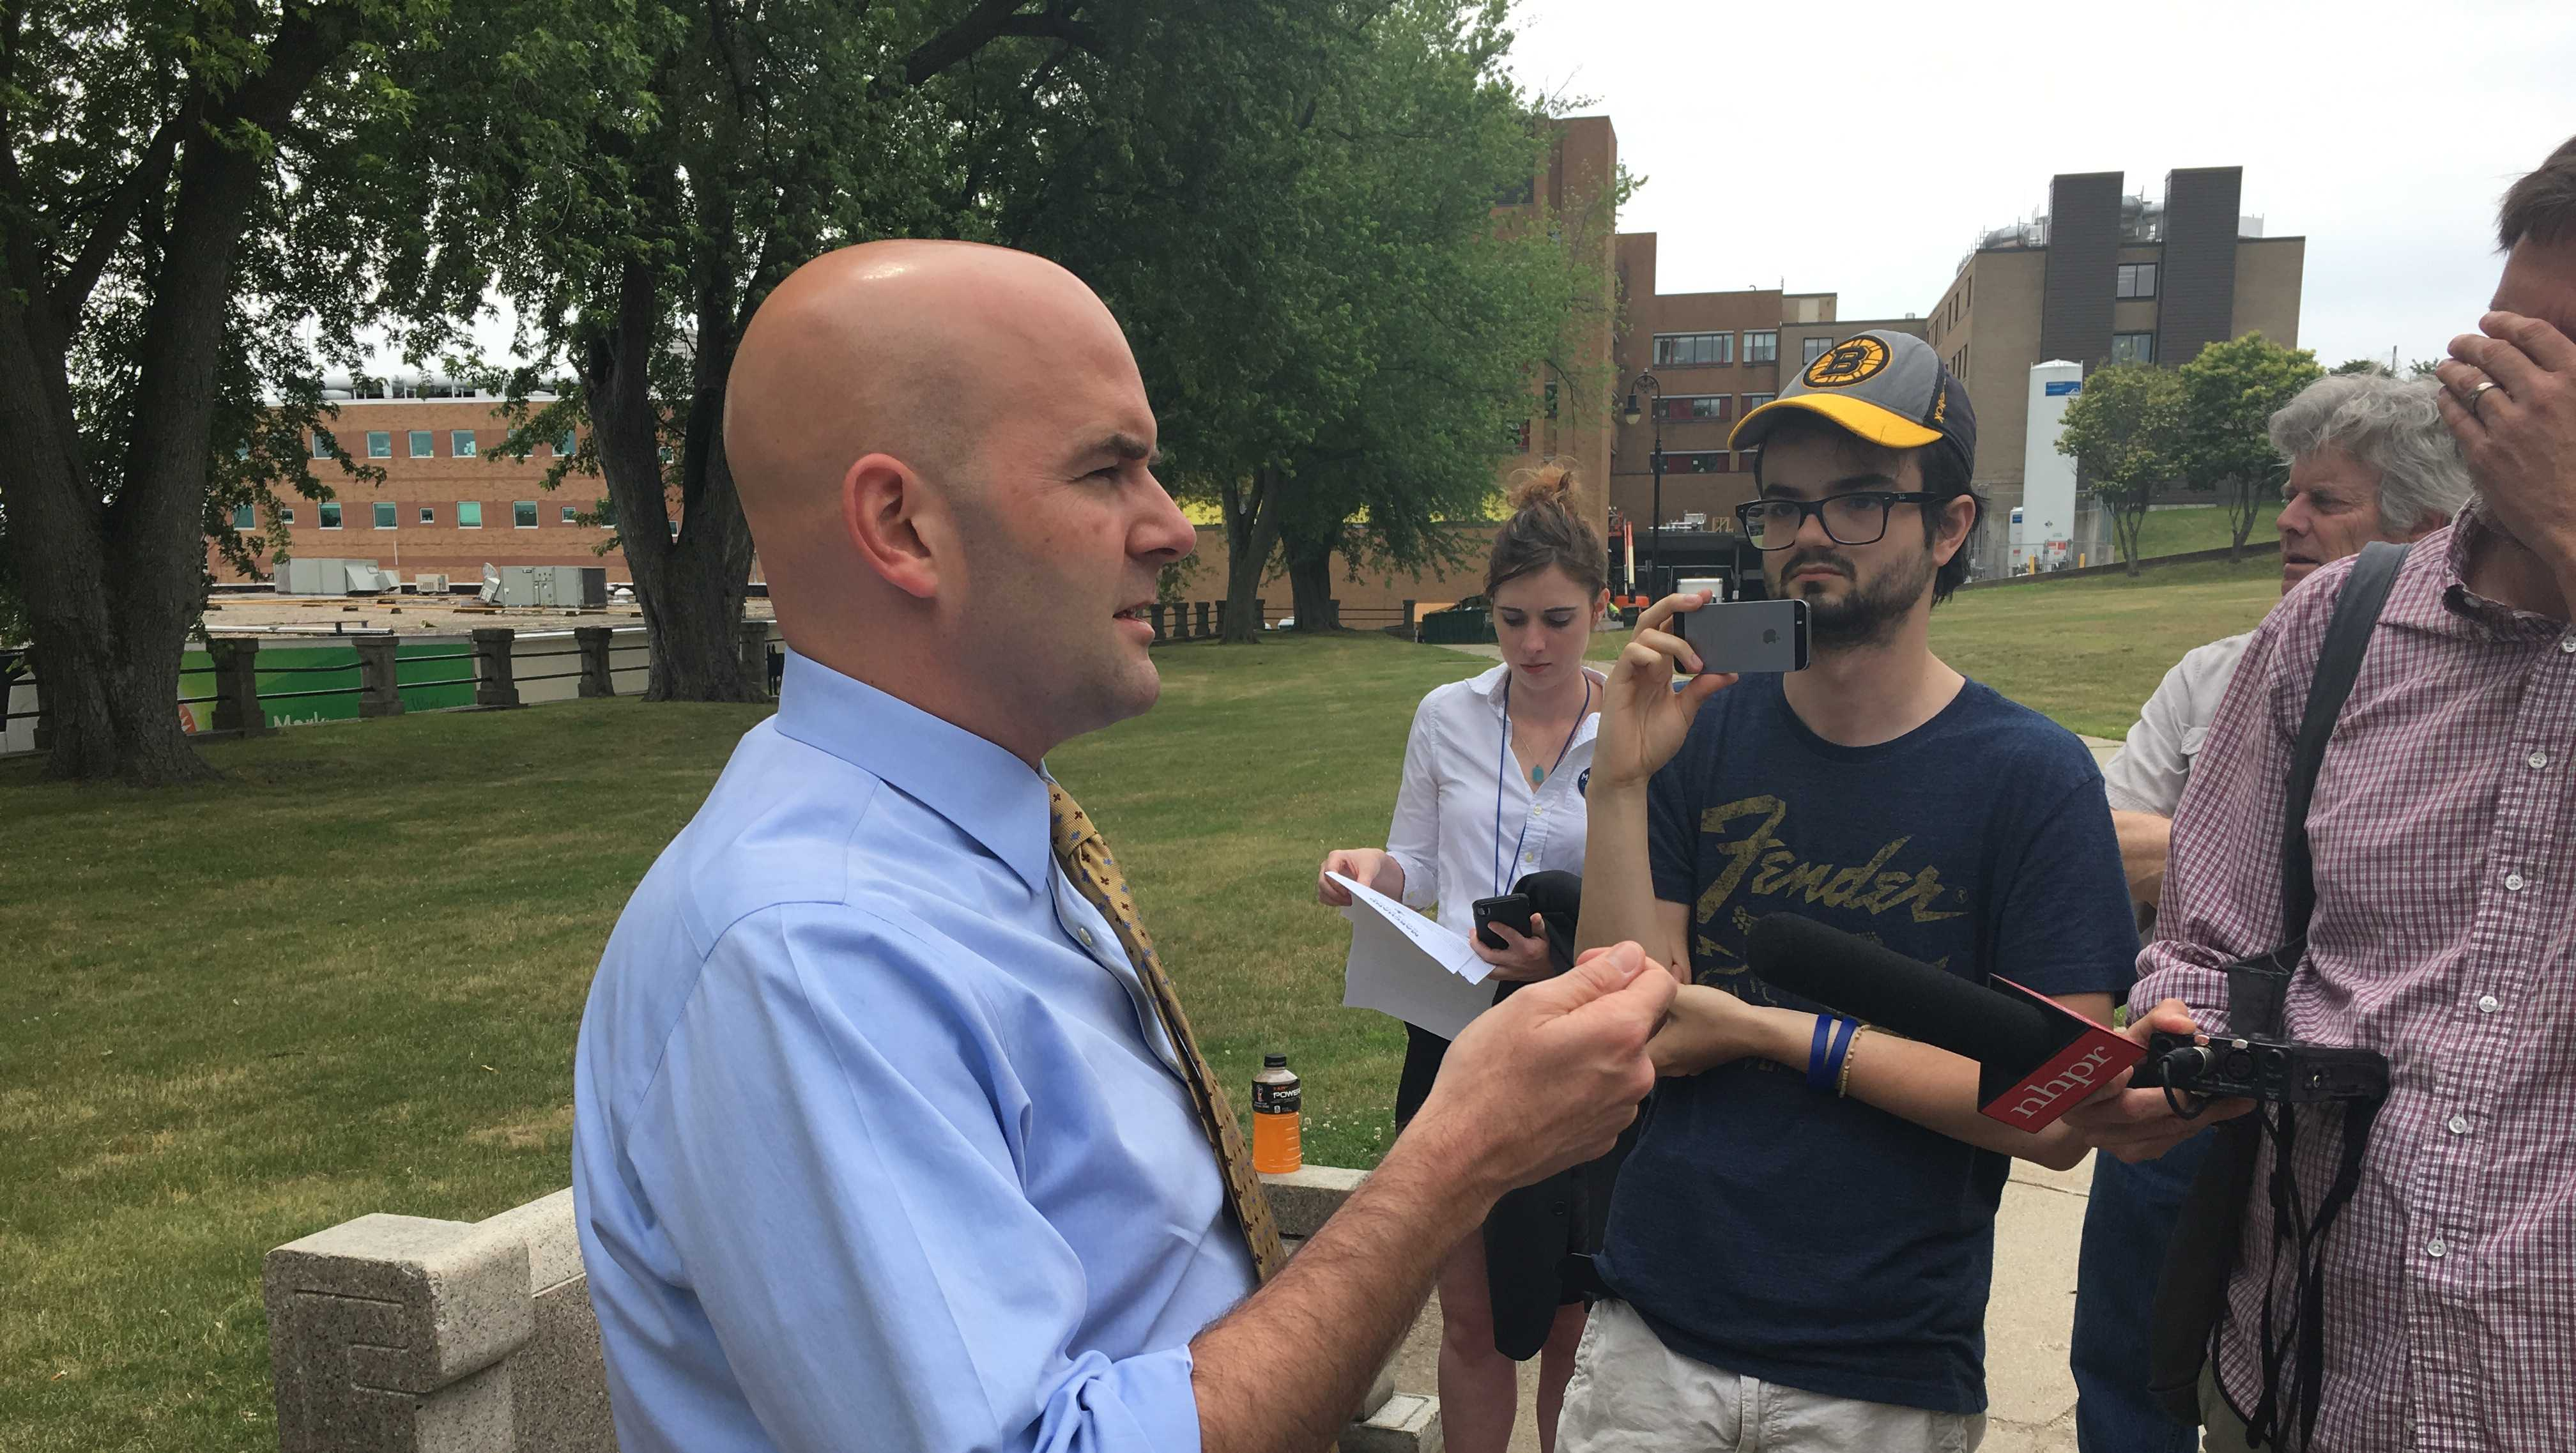 Steve Marchand unveils his immigration plan at Lafayette Park in Manchester.